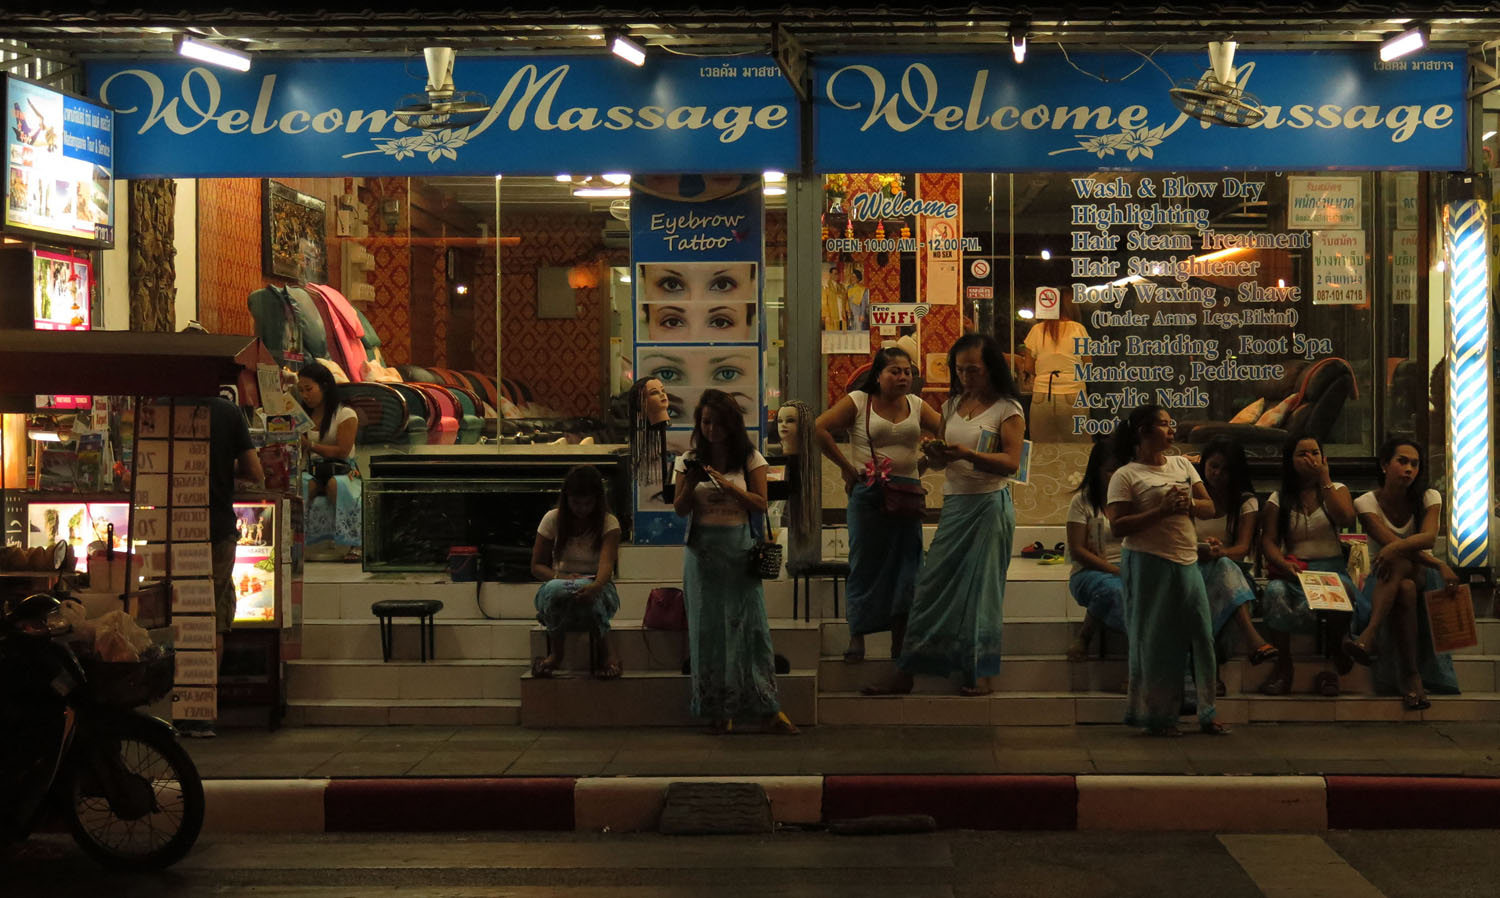 Thailand-Phuket-Welcome-Massage